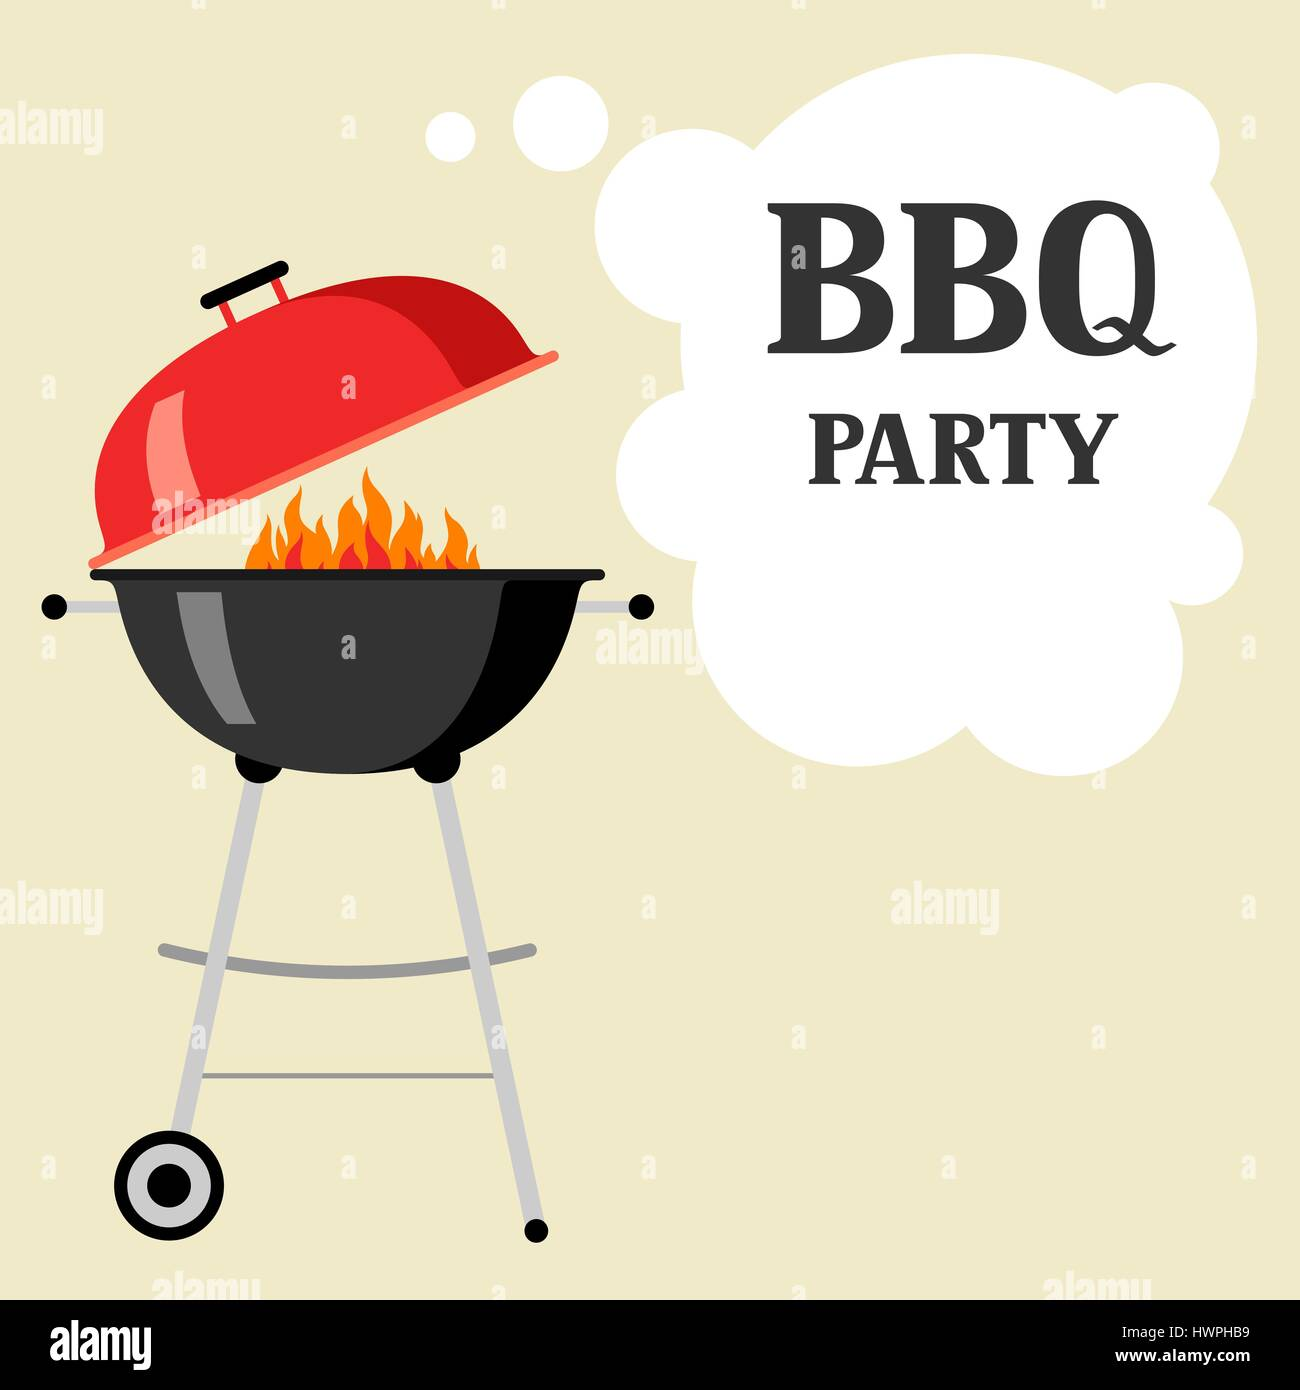 Bbq party background with grill and fire - Stock Vector